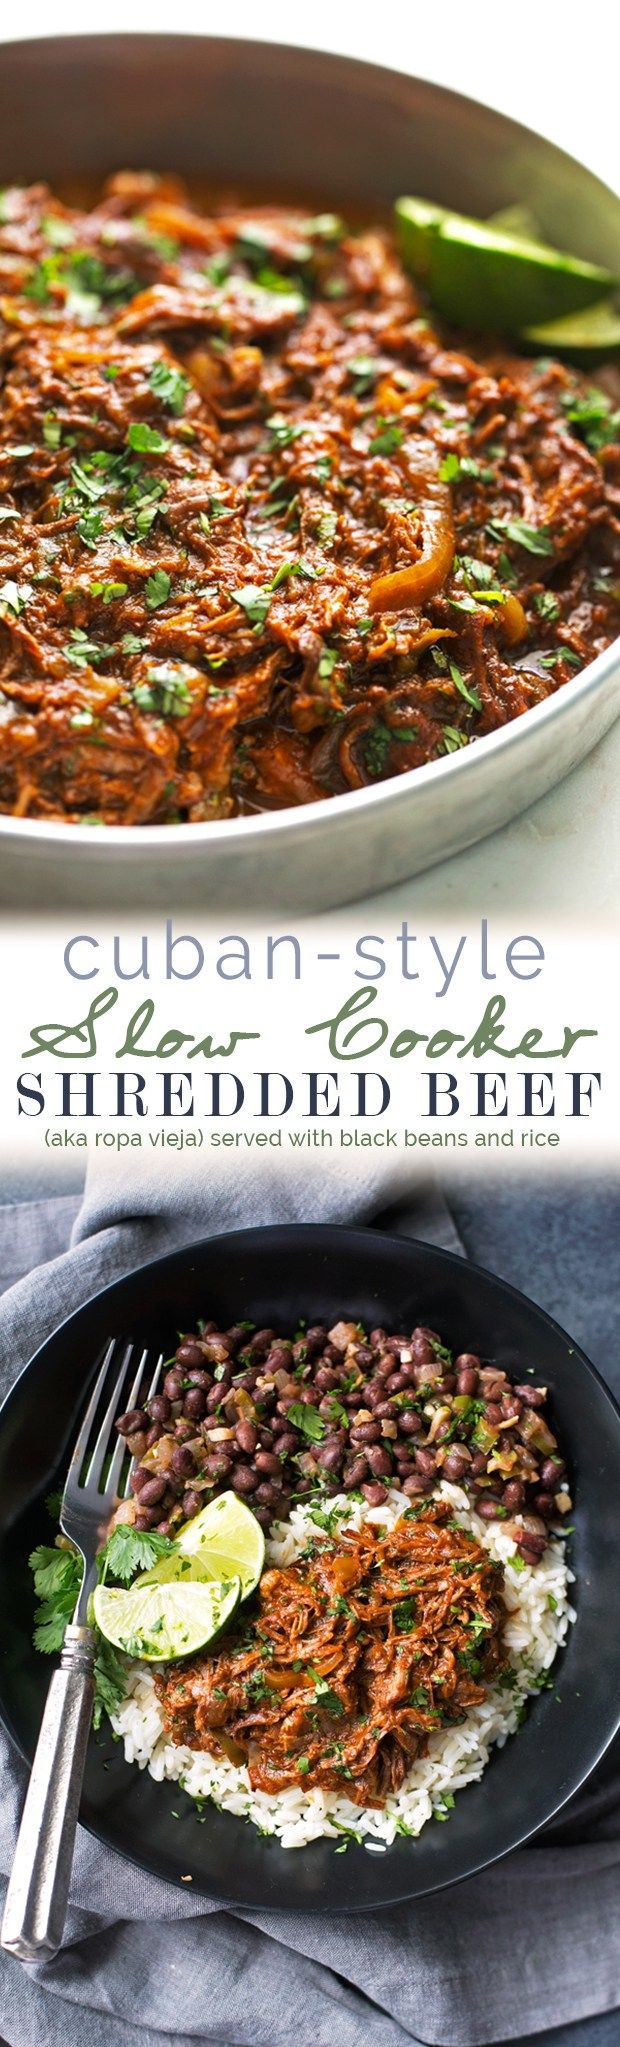 Cuban Shredded Beef - Made 7/26 - 5 star recipe, new favorite!